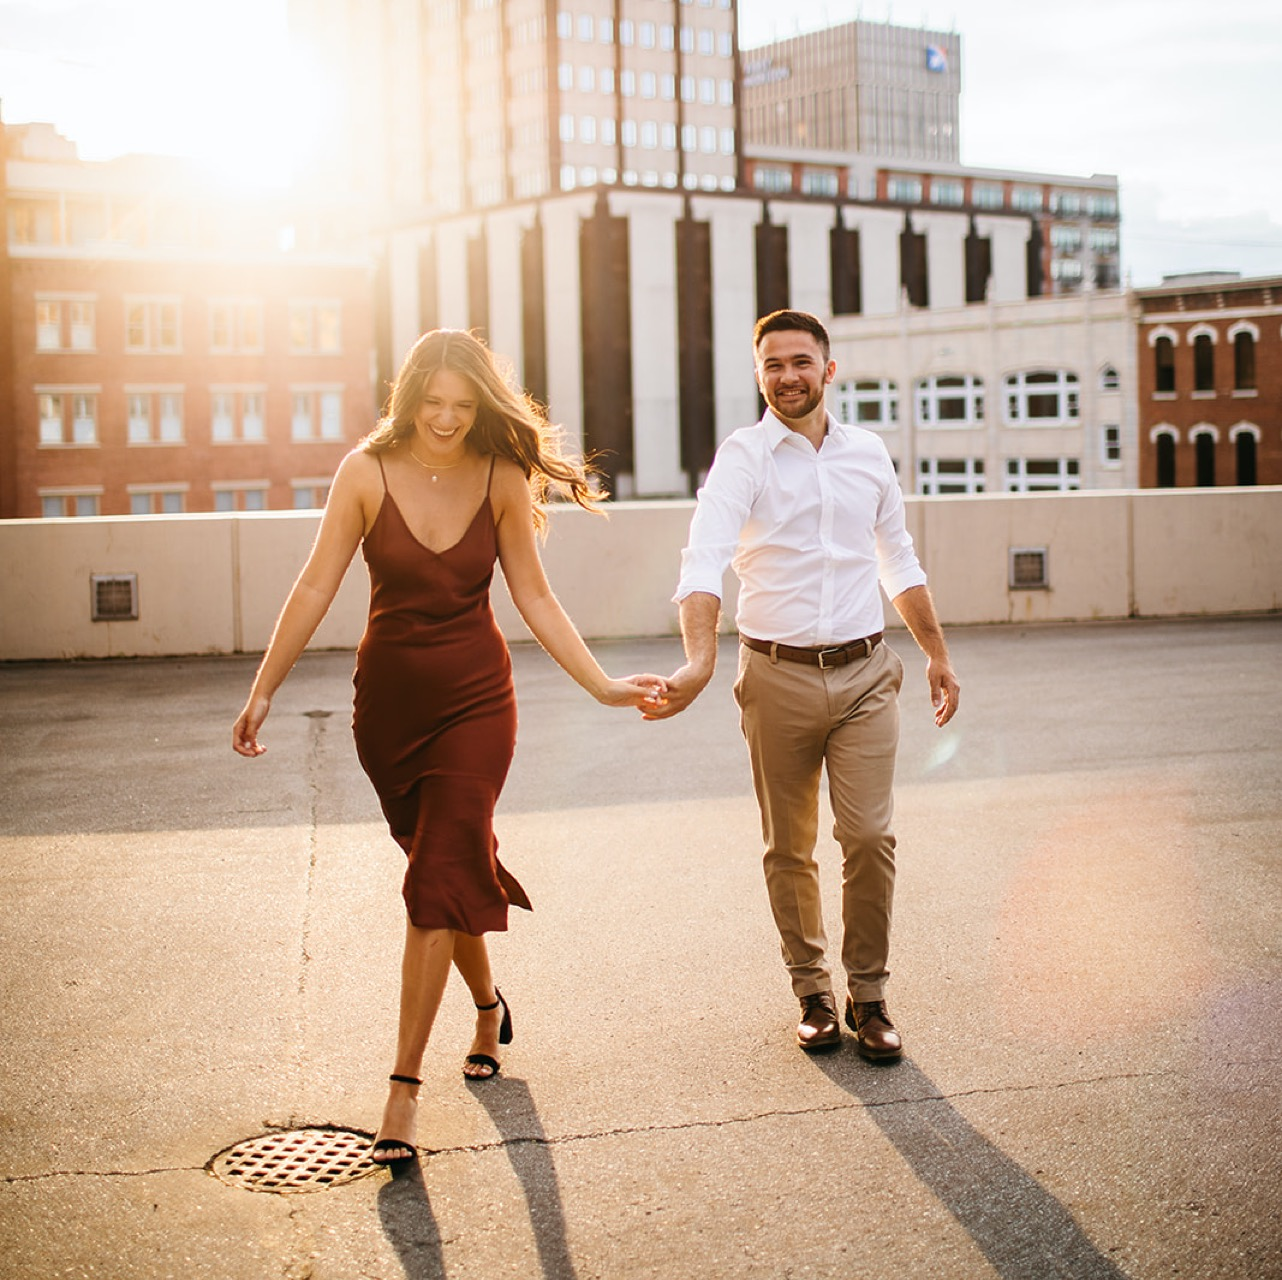 A couple walks hand-in-hand on a rooftop in downtown Chattanooga during their engagement photo session.